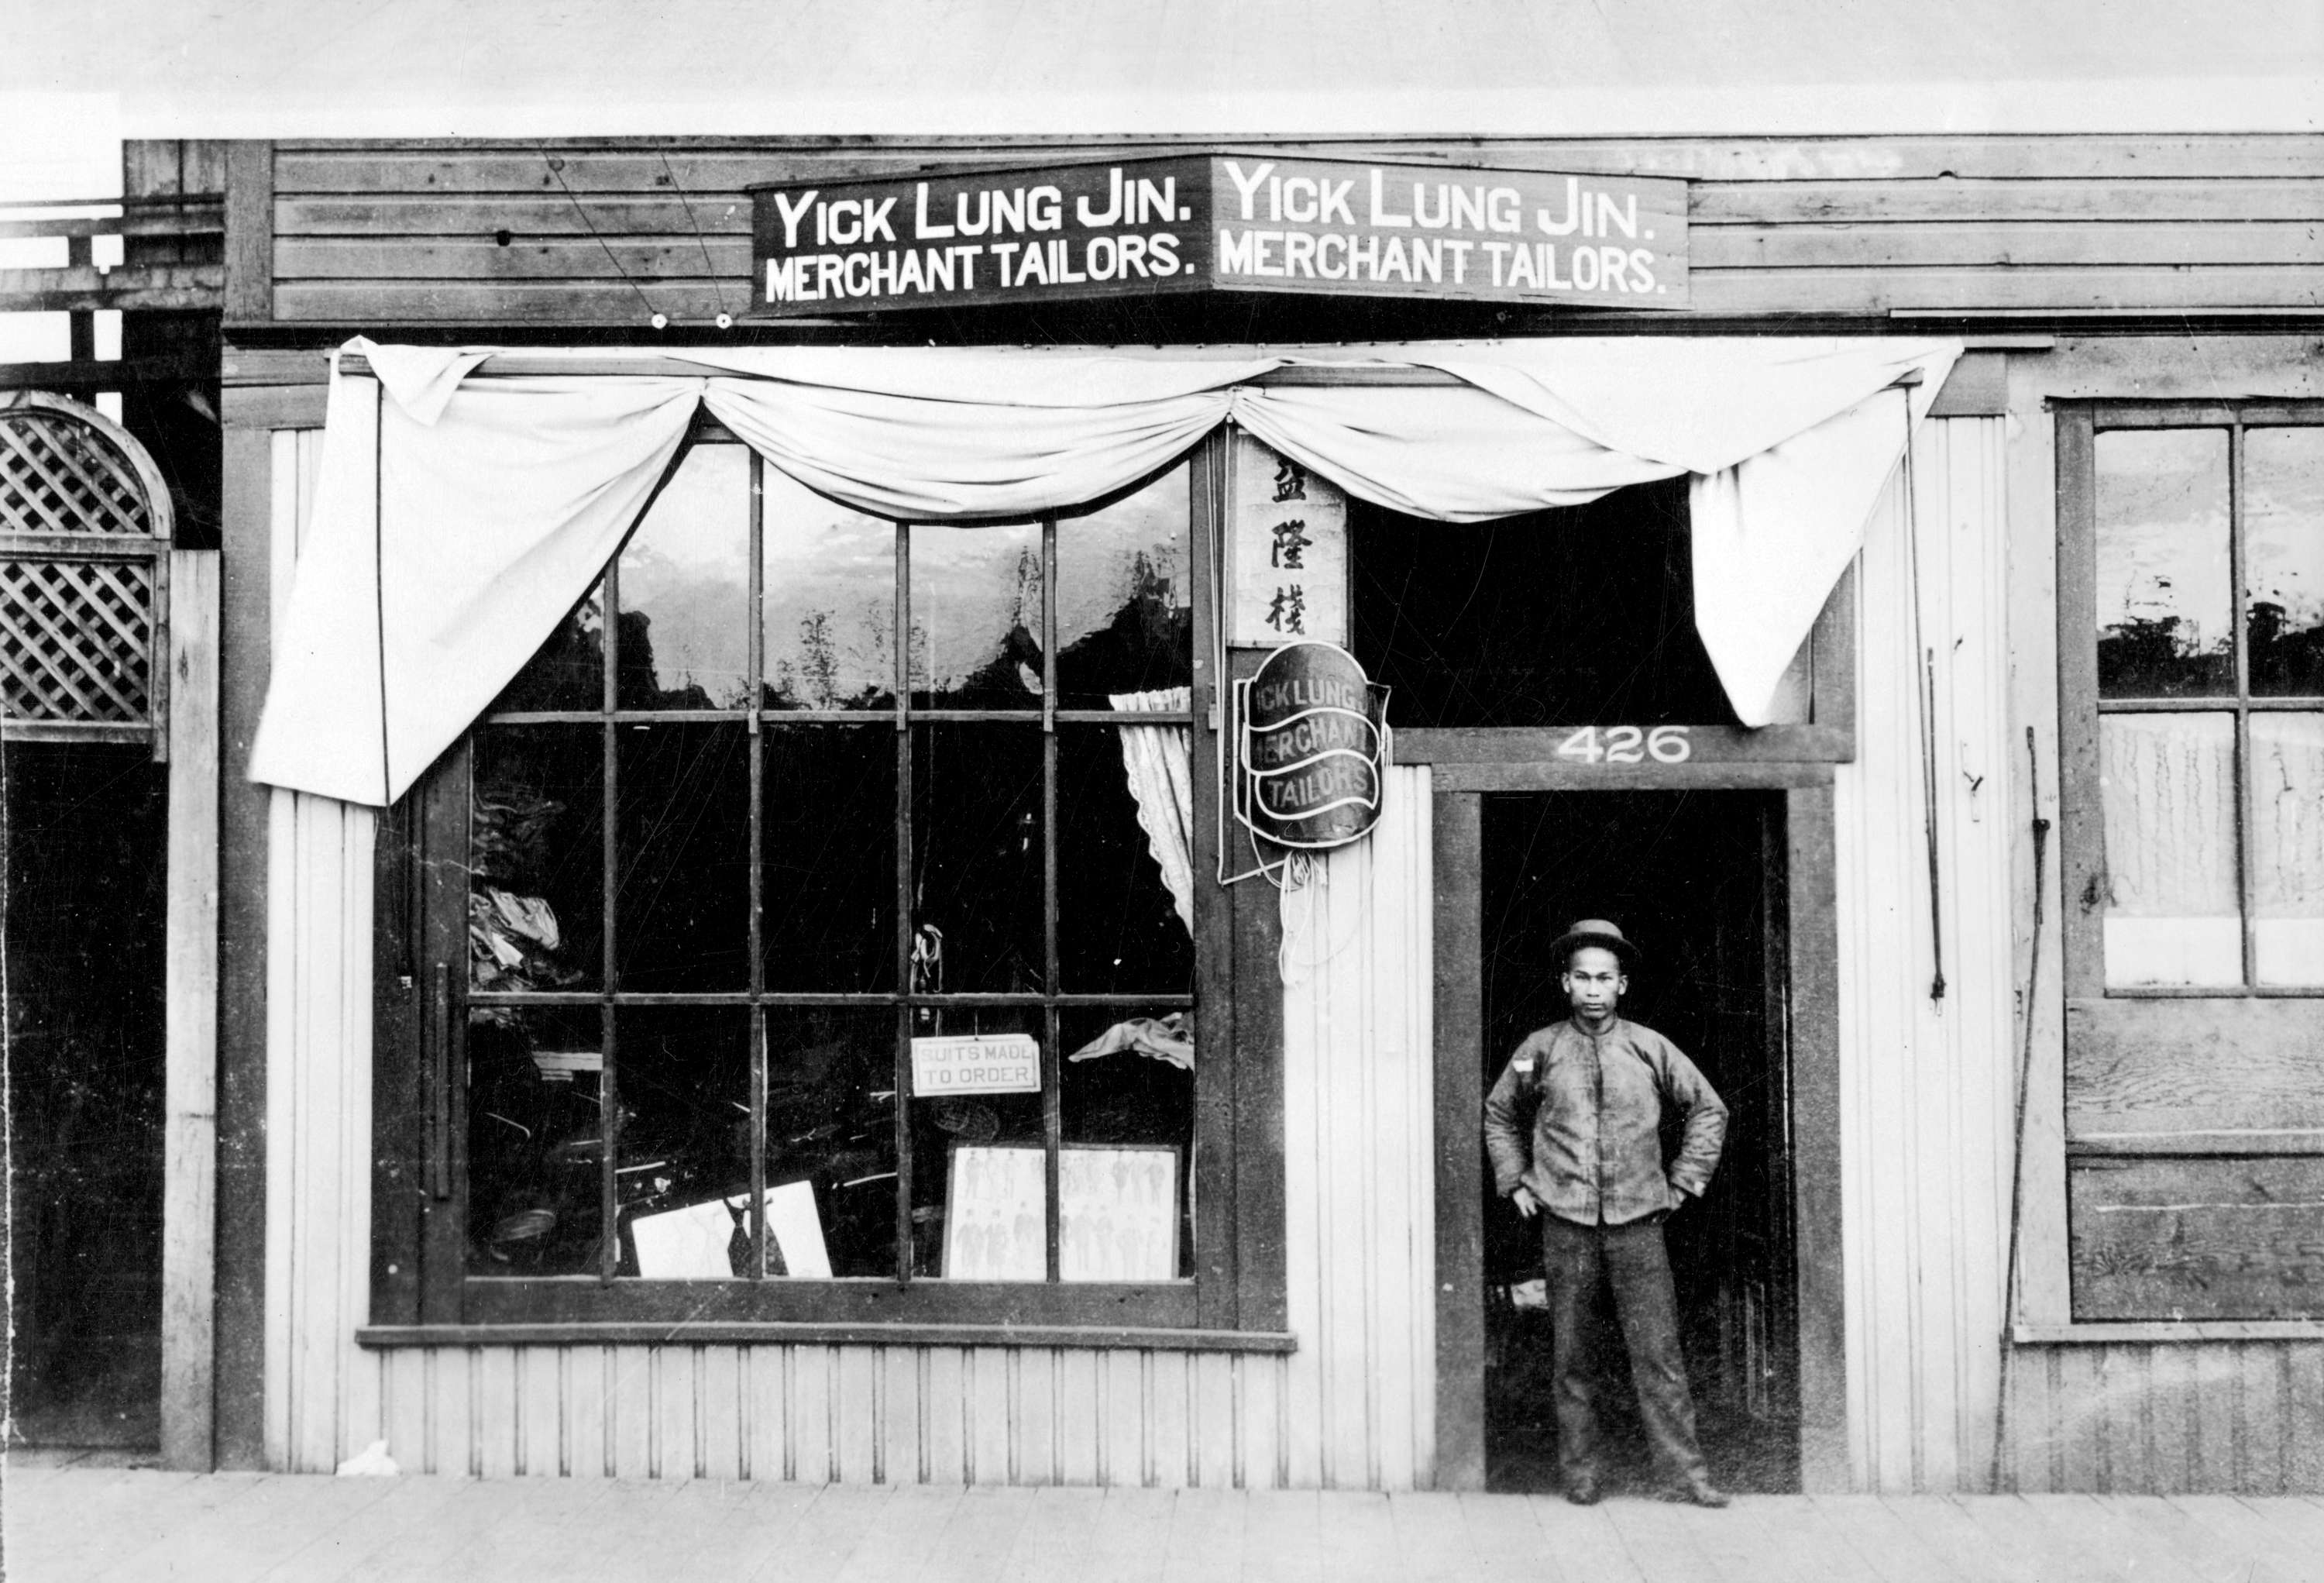 Yick Lung Jin's Merchant Tailors ' shop, 426 Carrall Street in Vancouver, B.C., ca. 1897.